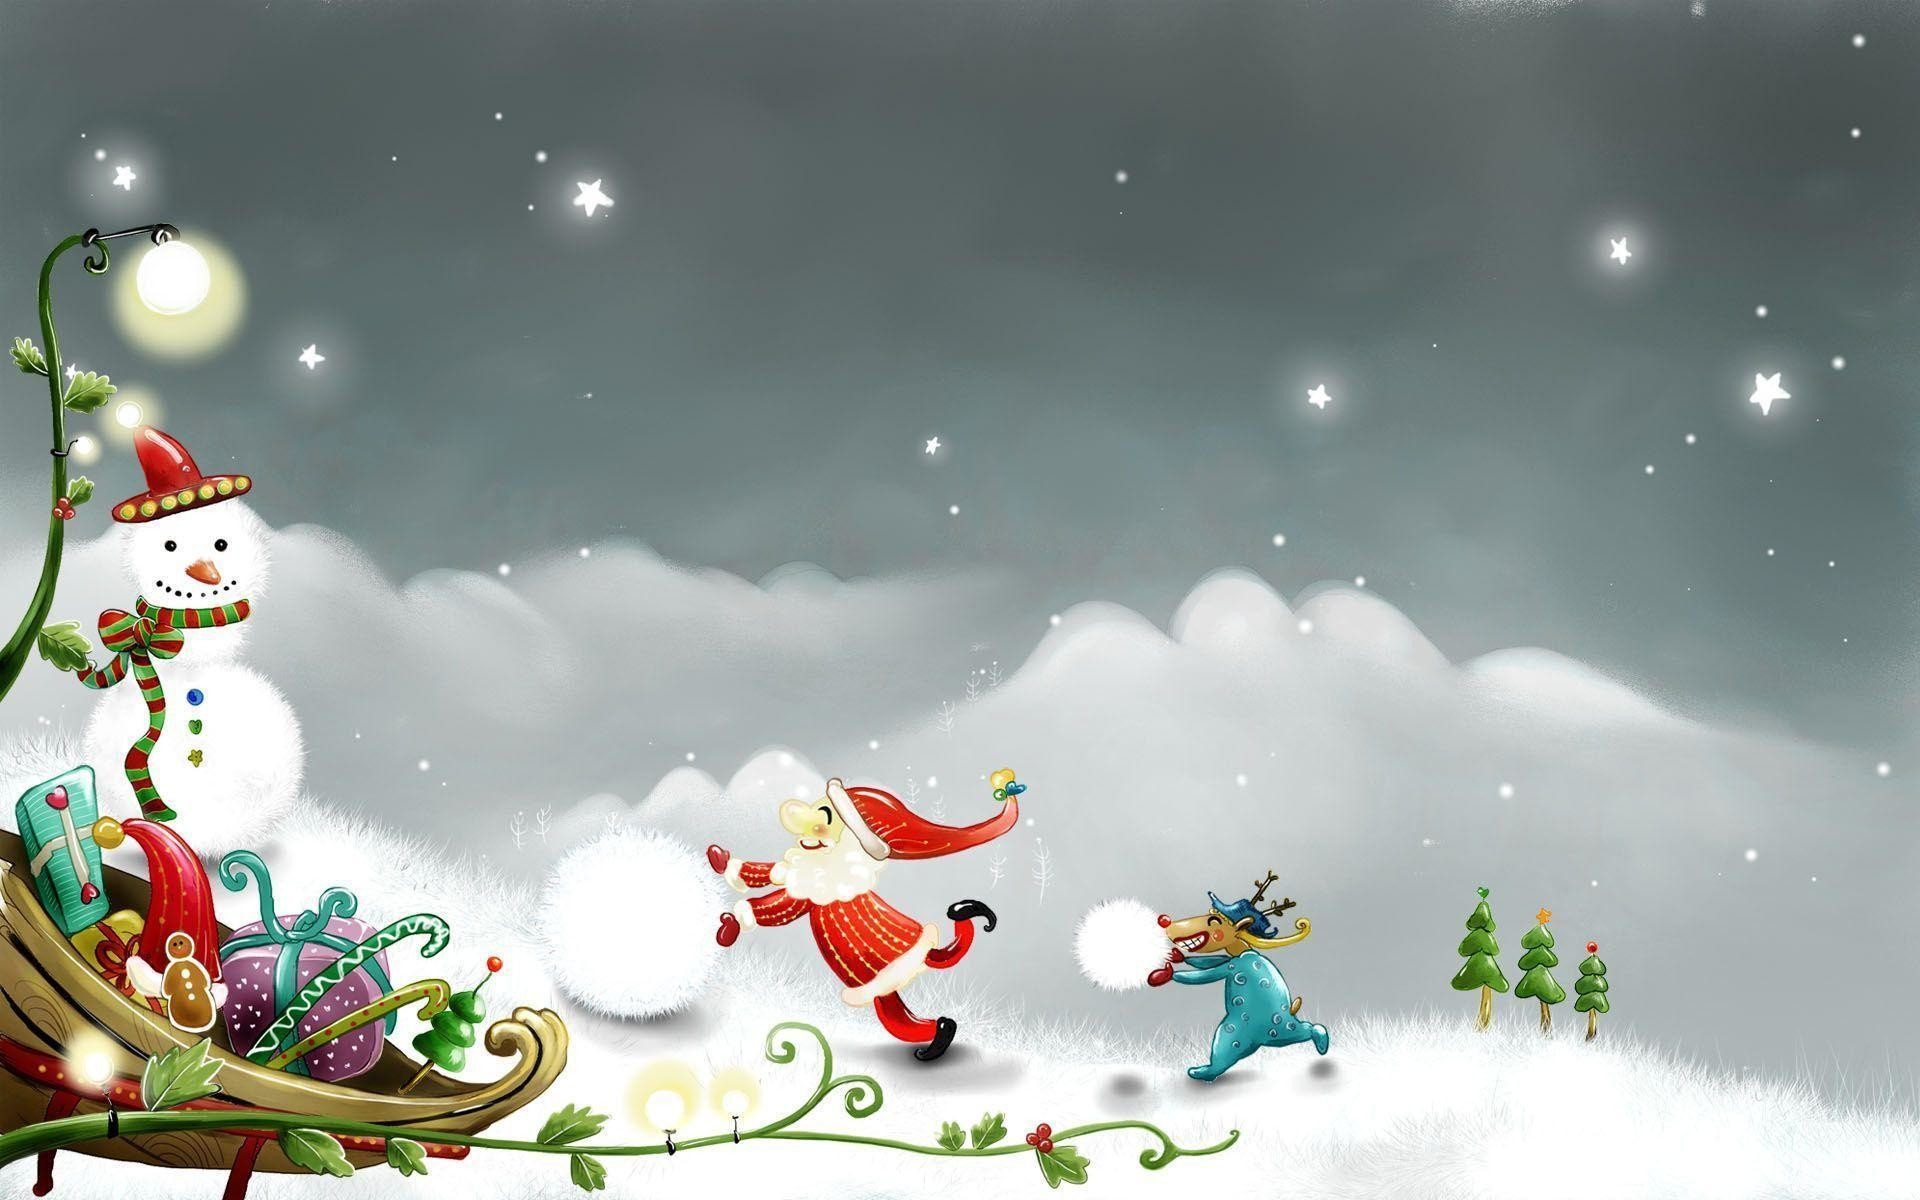 Christmas Wallpapers Backgrounds Â« Christmas 2014 Ideas and Greetings